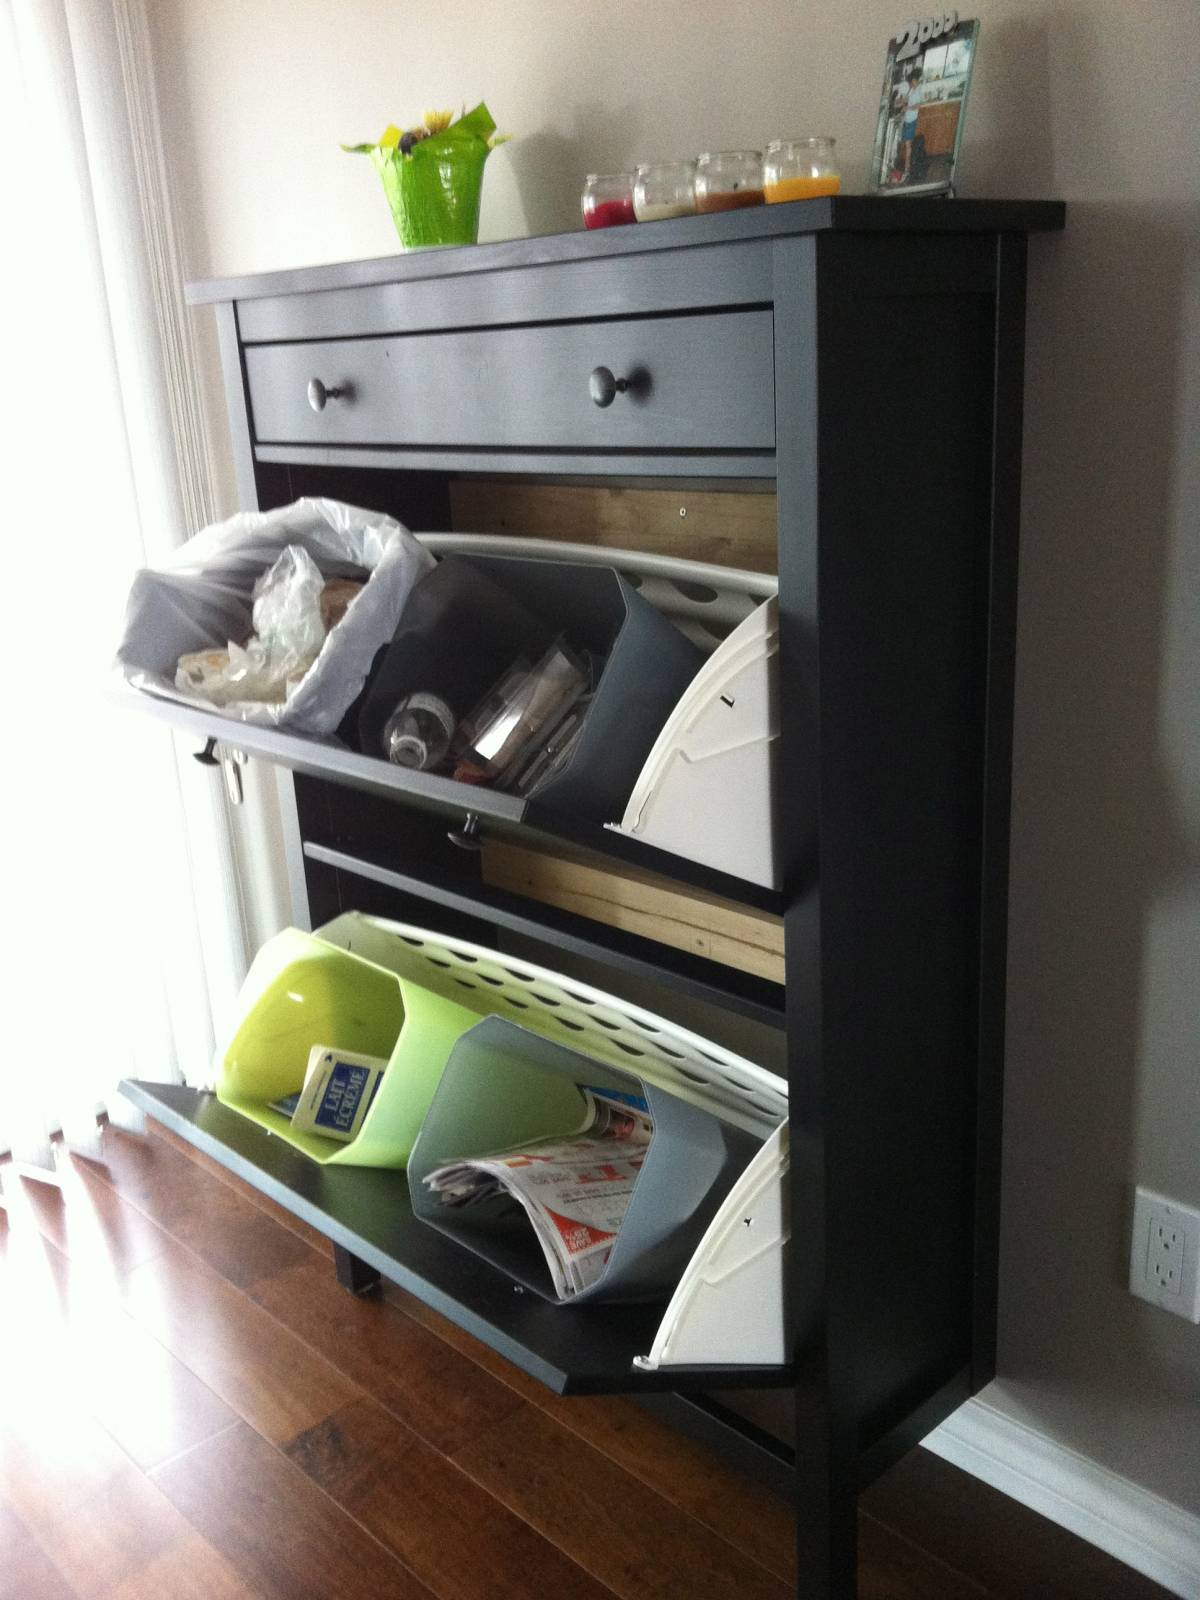 22 Amazing Ideas Of The Tilt Out Trash Bin For Your Home